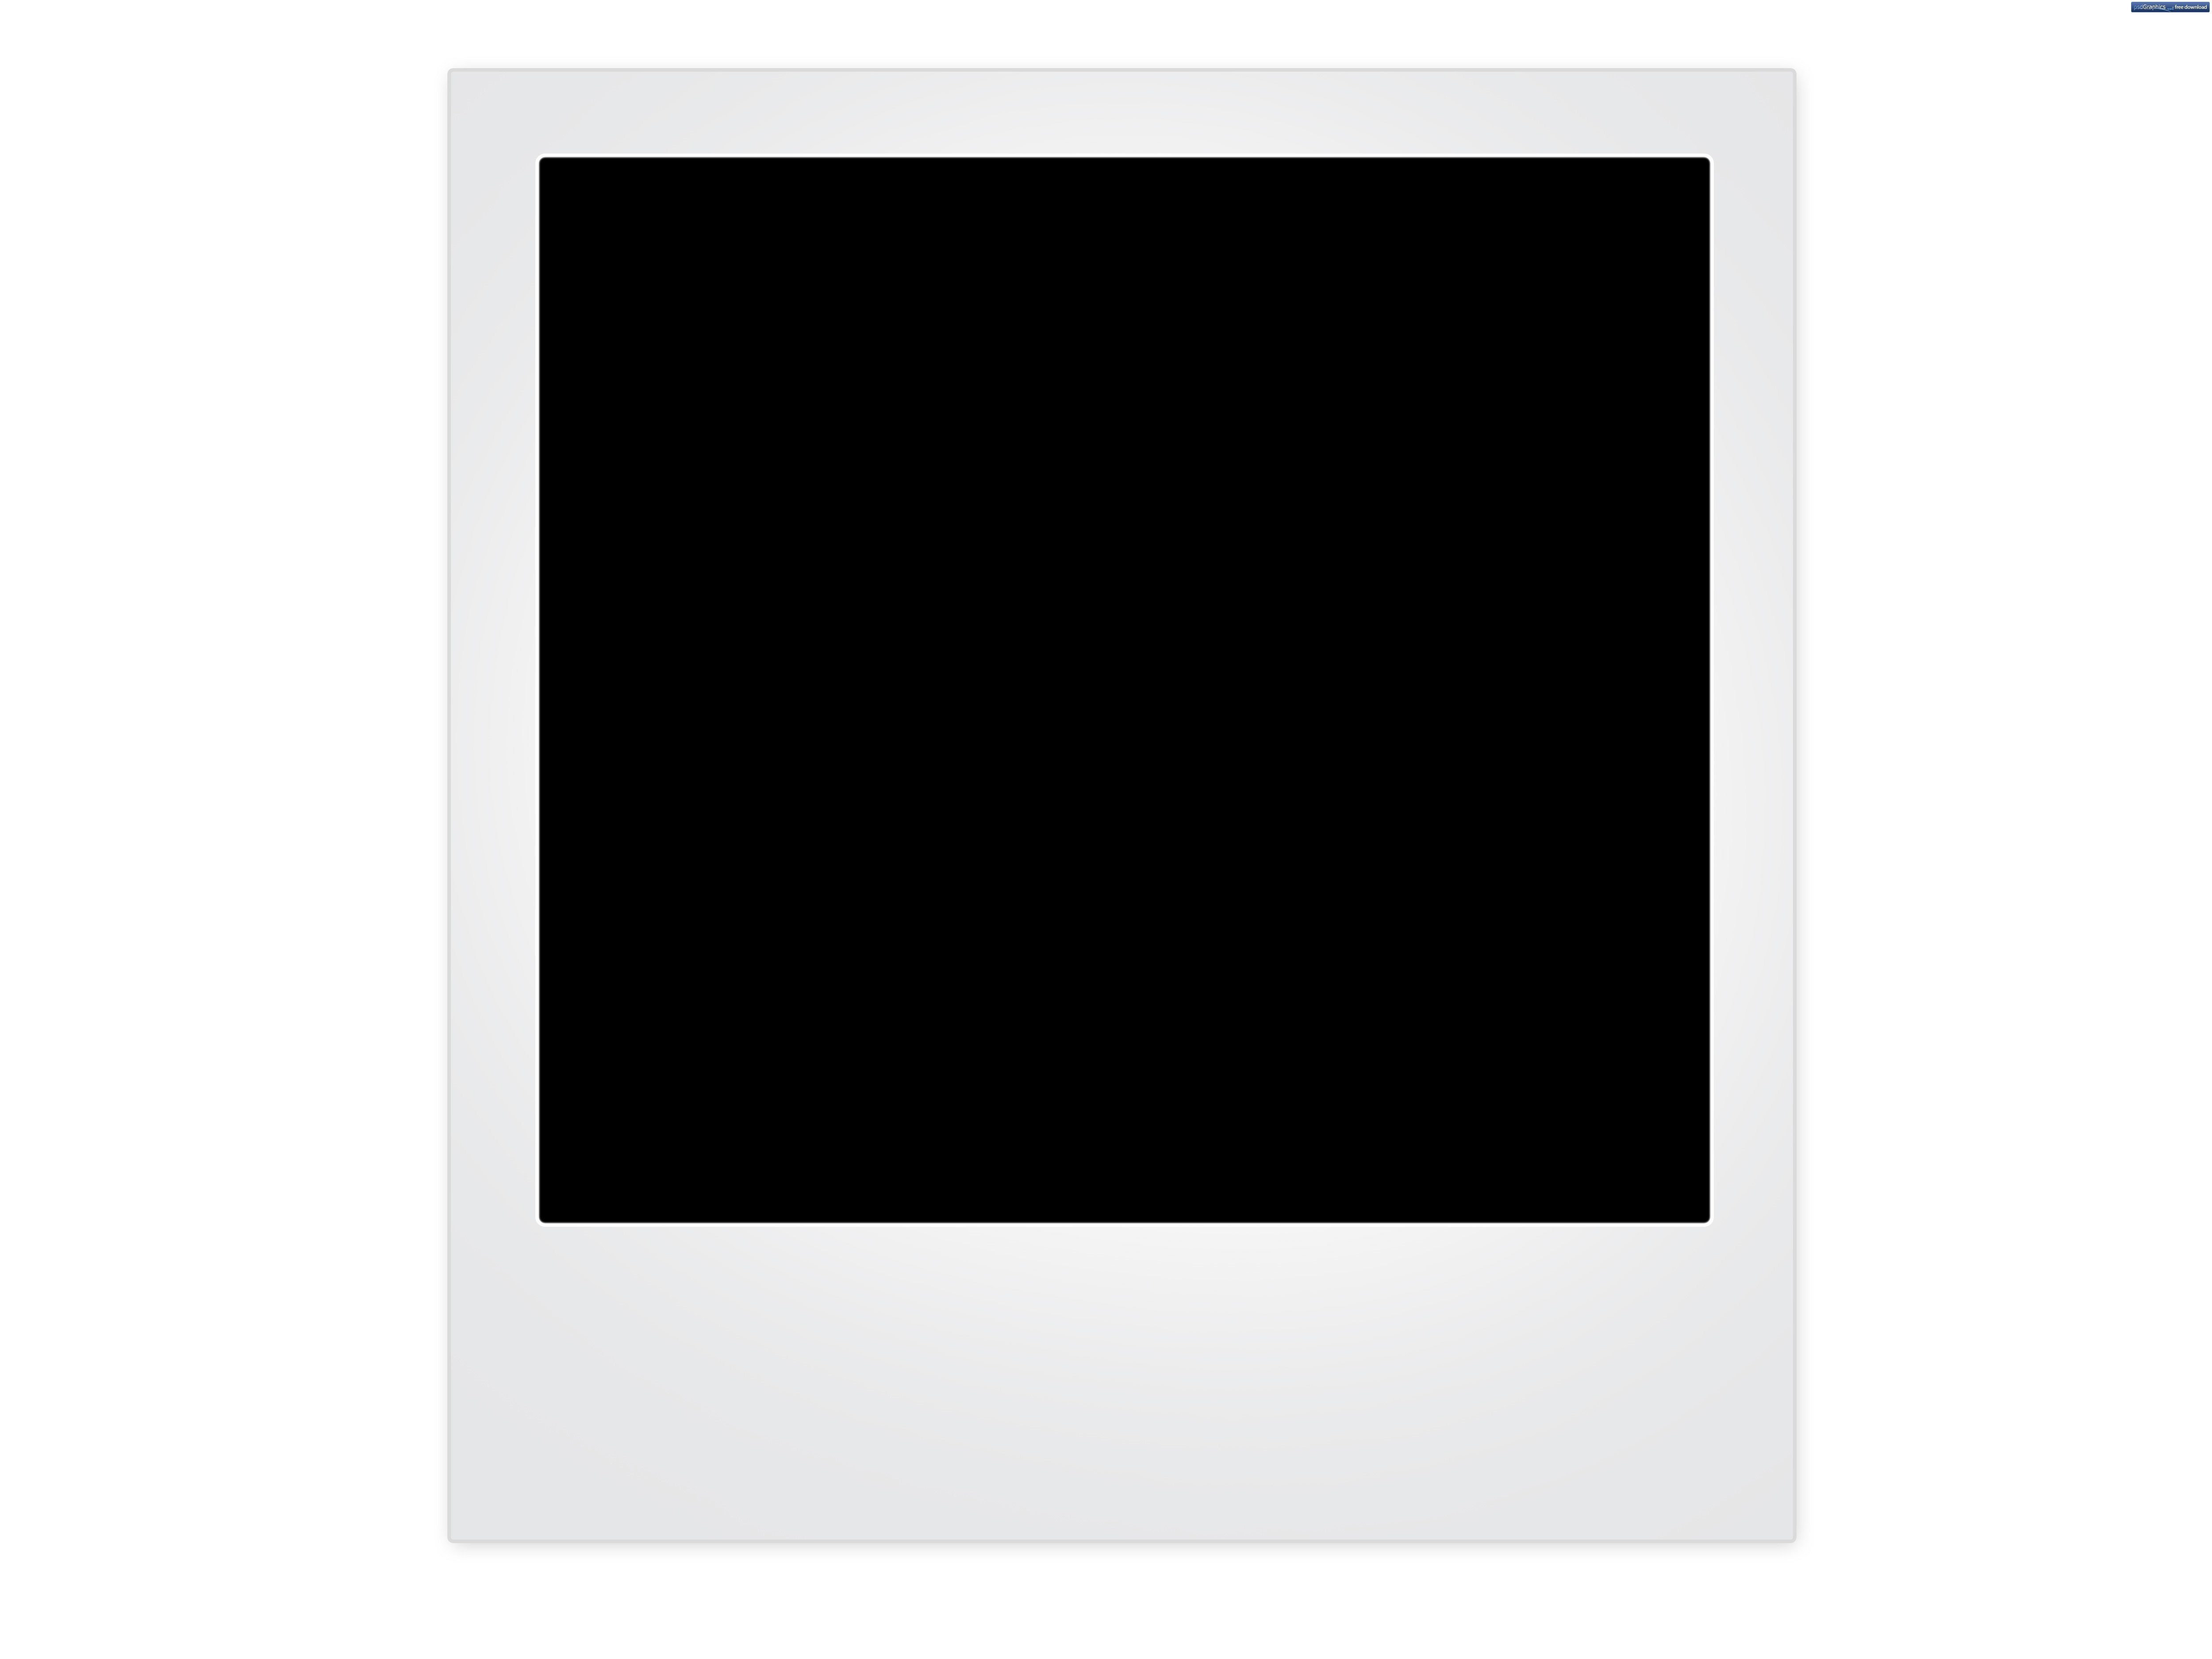 Polaroid picture png transparent background. Blank frame at template